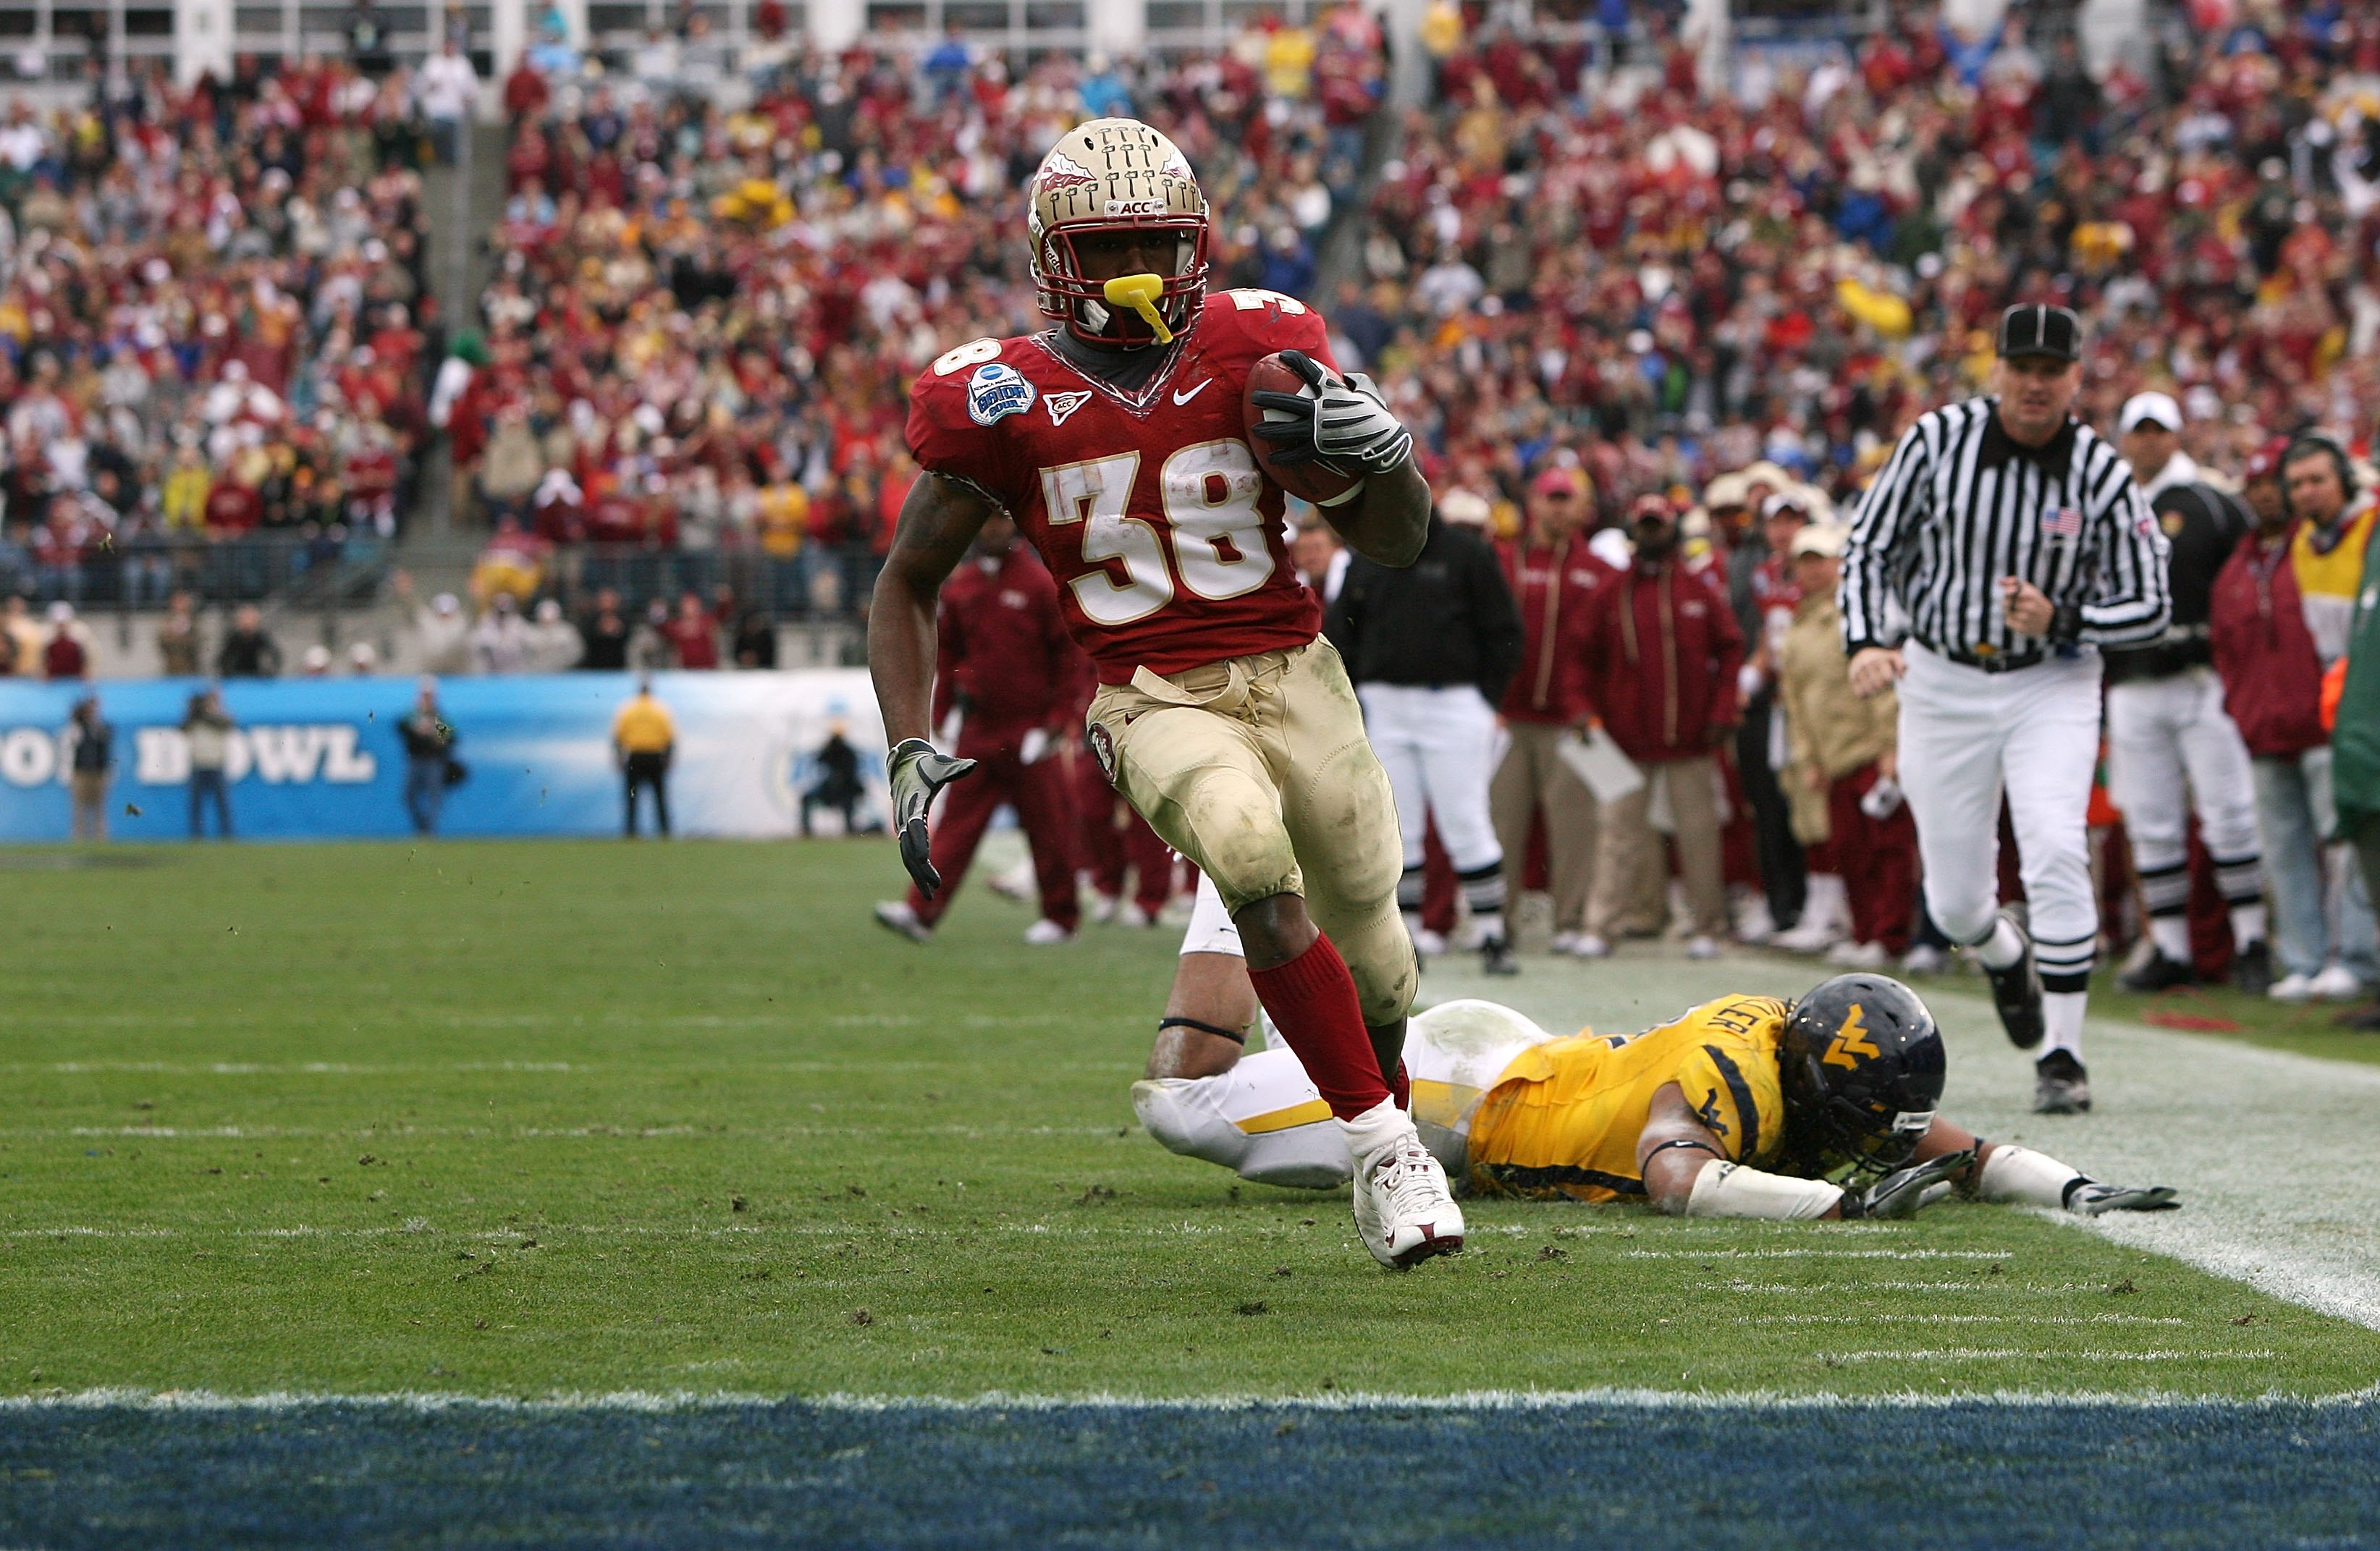 JACKSONVILLE, FL - JANUARY 01:  Running back Jermaine Thomas #38 of the Florida State Seminoles avoids a tackle attempt by linebacker Julian Miller #97 of the West Virginia Mountaineers to score a touchdown in the first quarter during the Konica Minolta G